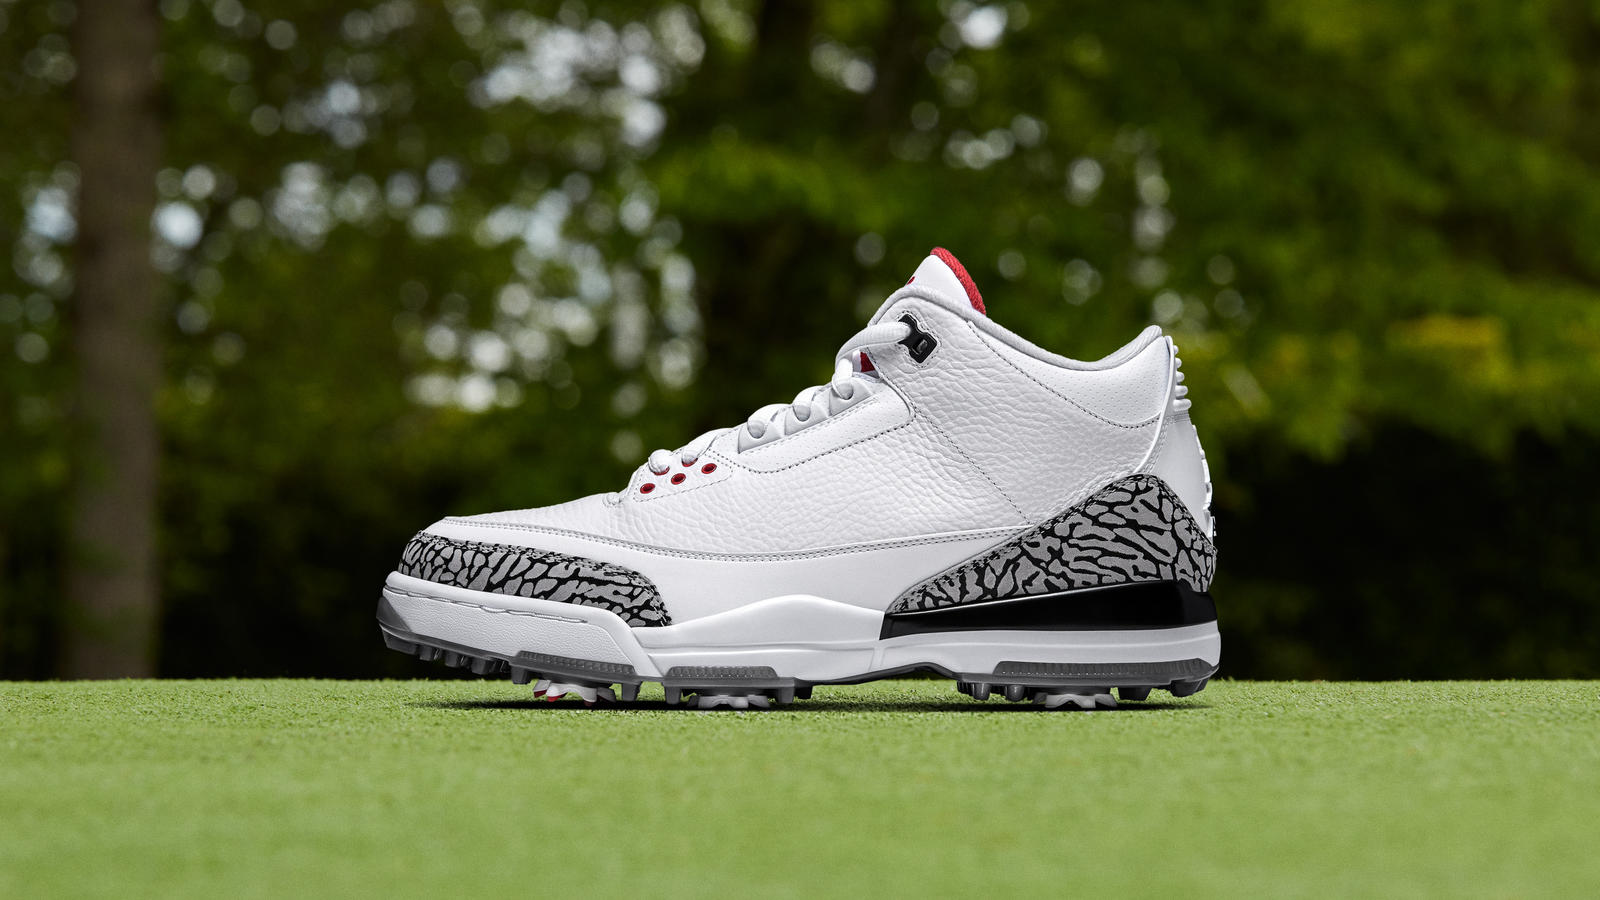 ac093ac493e679 Air Jordan III Golf - Nike News